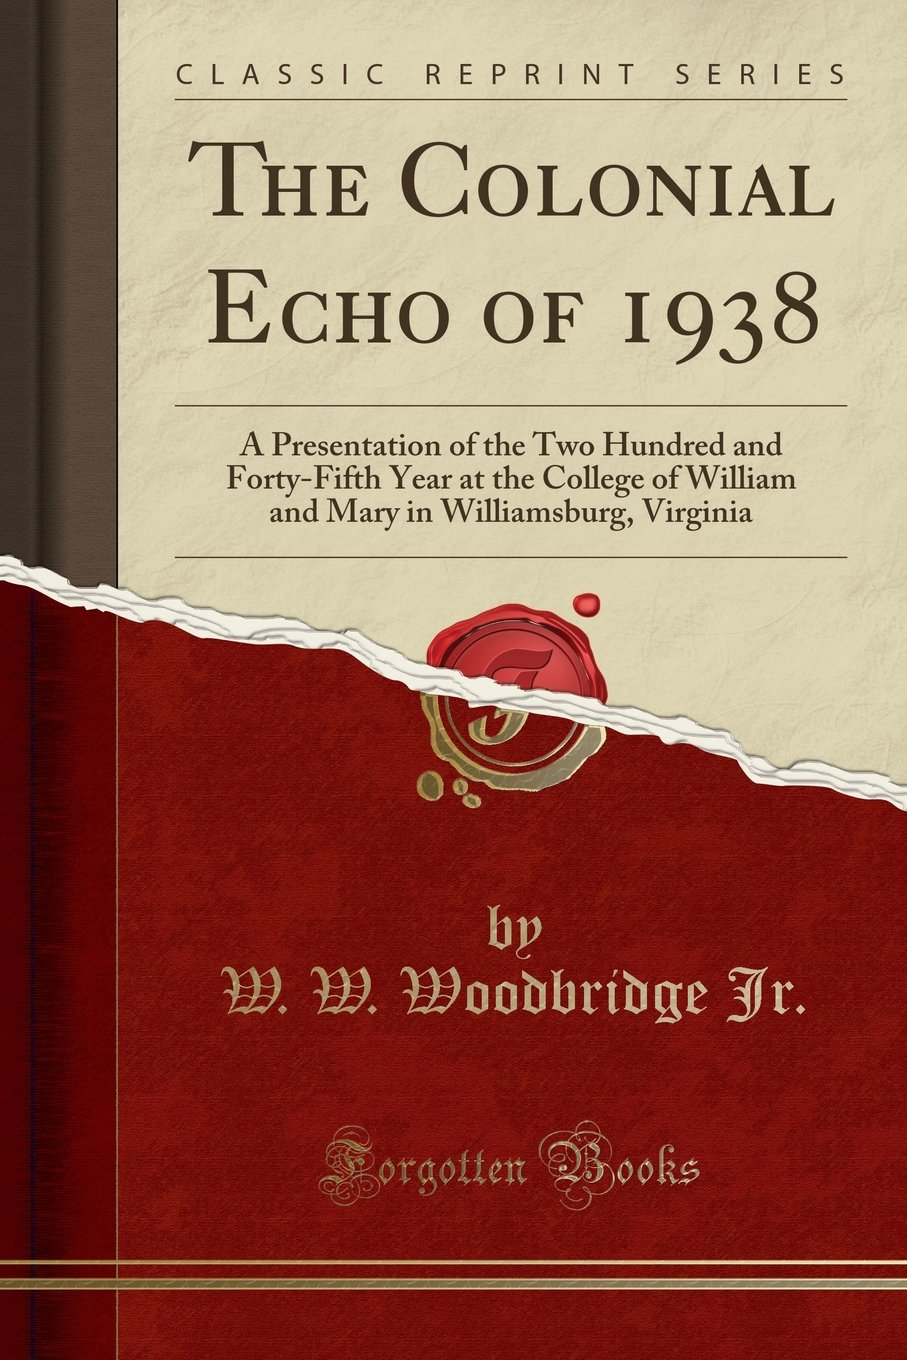 Download The Colonial Echo of 1938: A Presentation of the Two Hundred and Forty-Fifth Year at the College of William and Mary in Williamsburg, Virginia (Classic Reprint) ebook